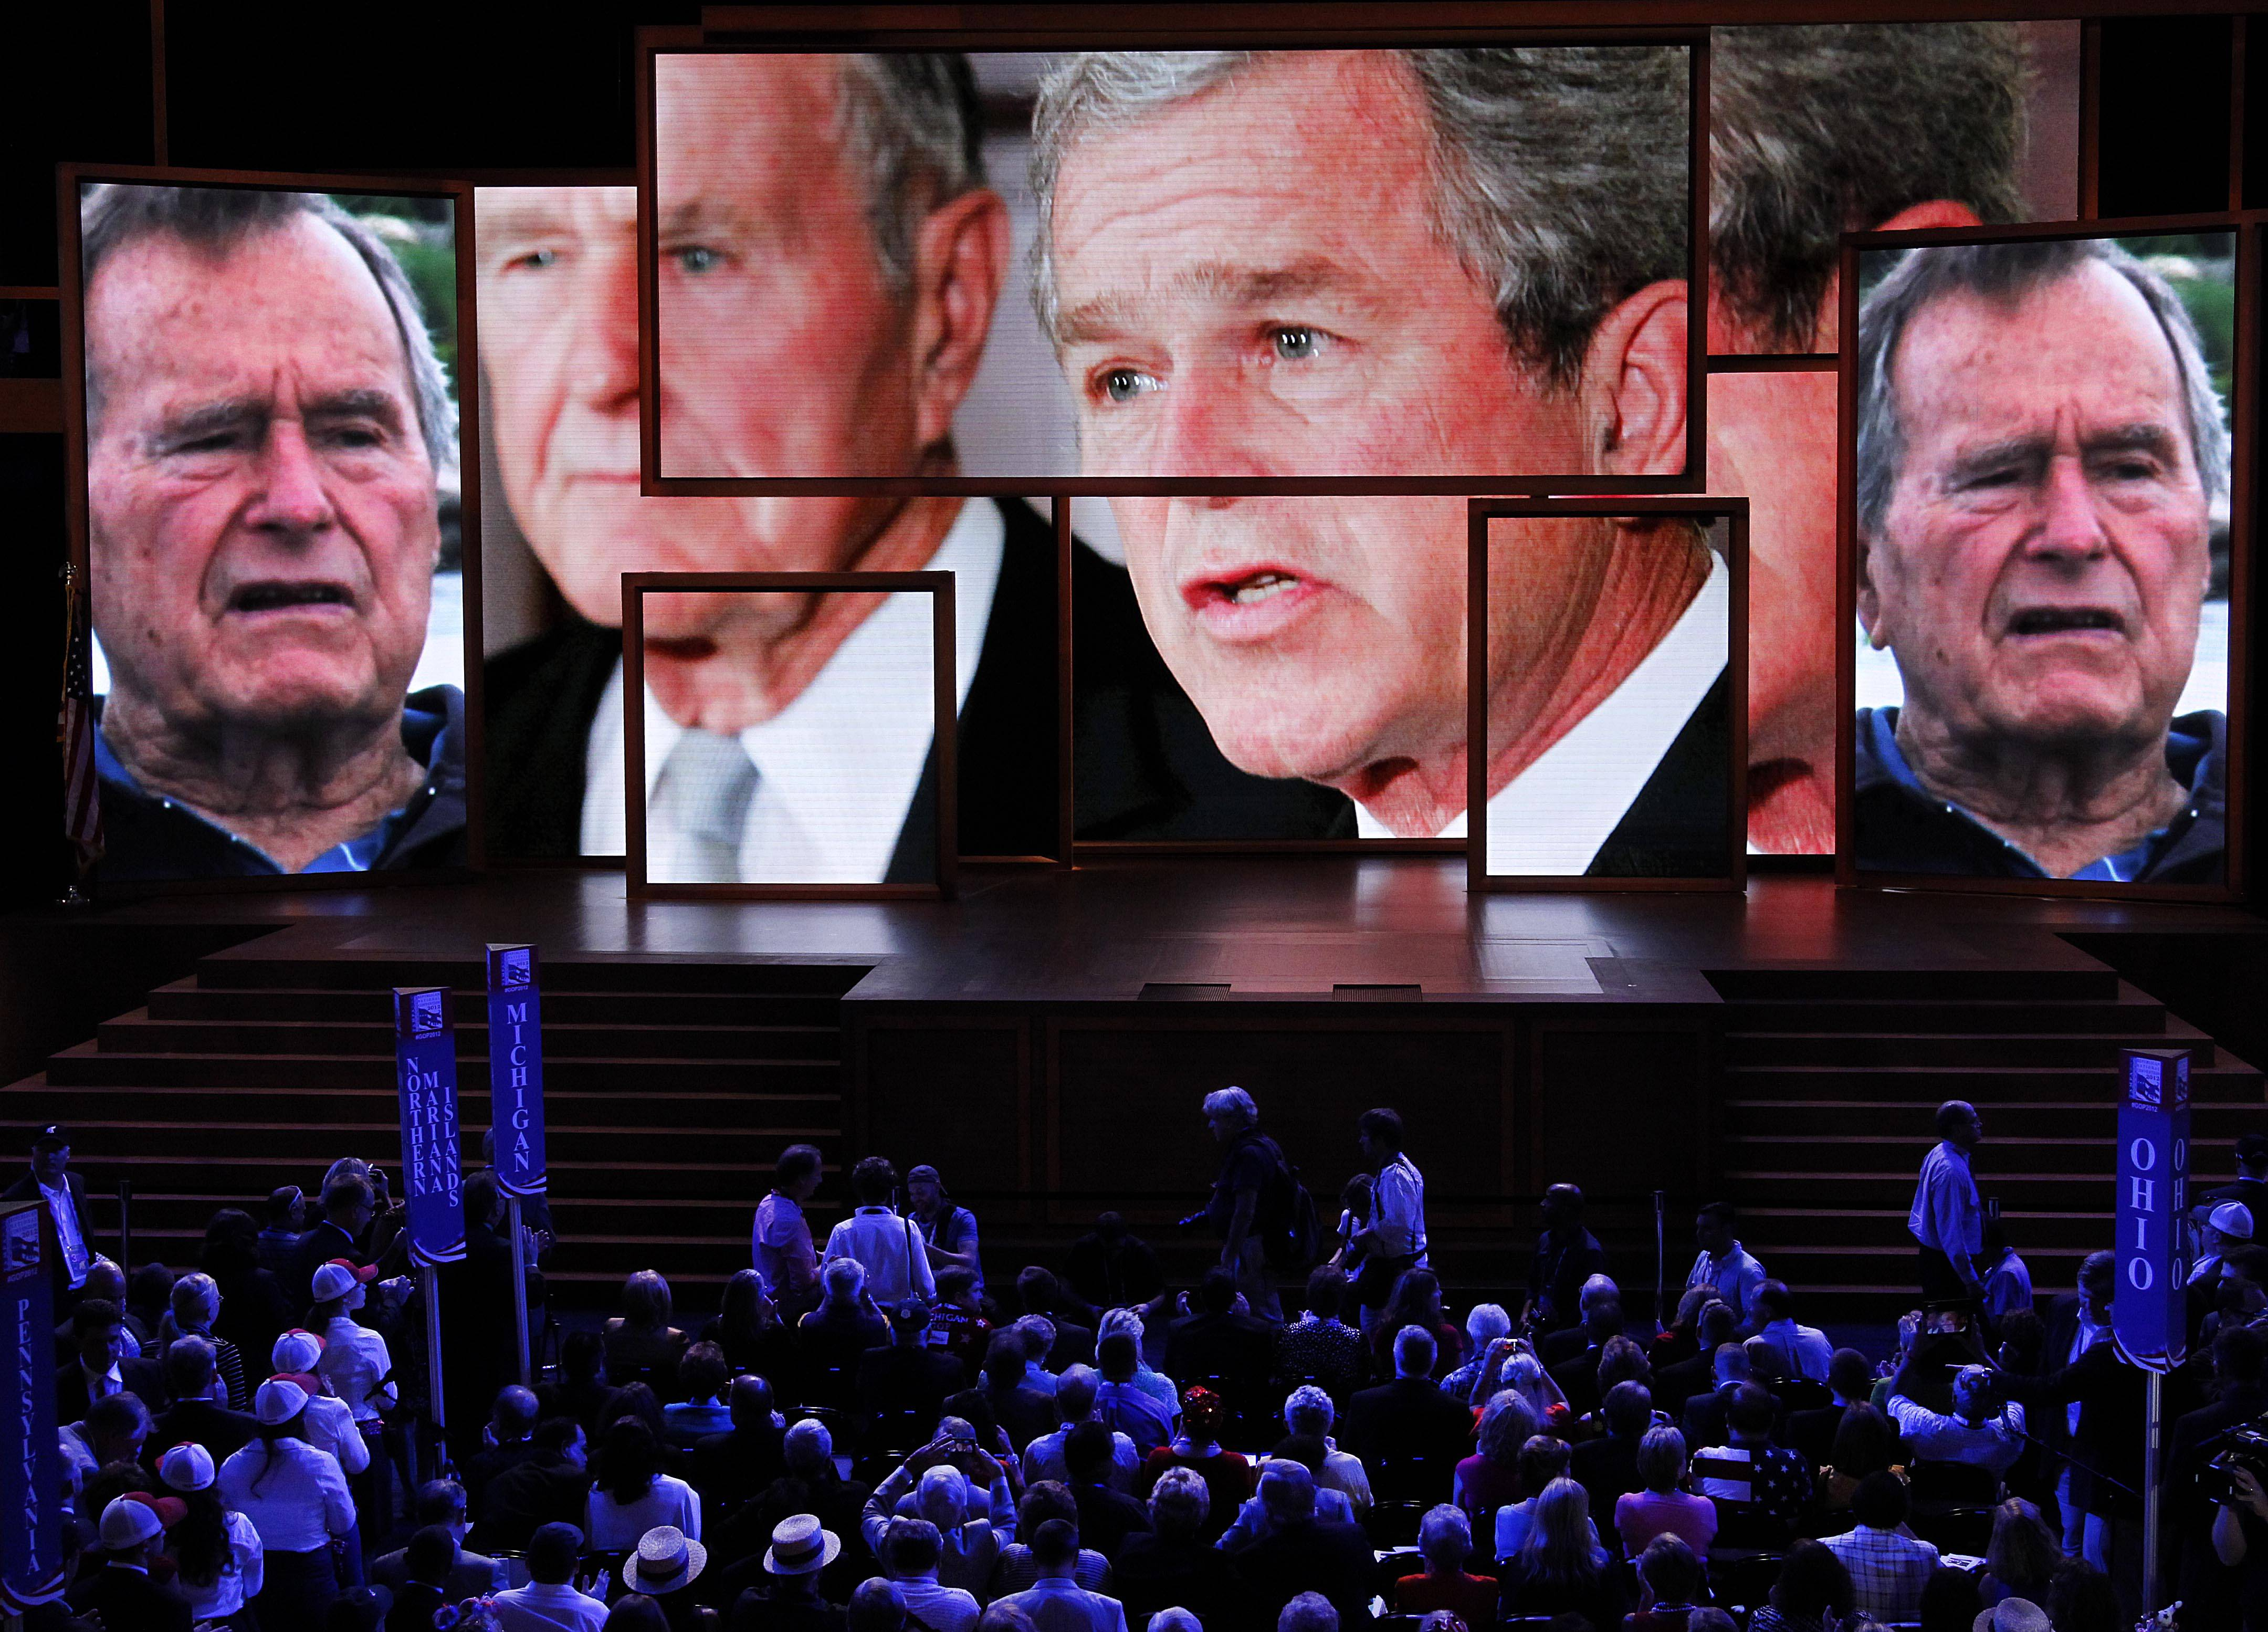 A video tribute to President George H. W. Bush and President George W. Bush is shown Wednesday during the Republican National Convention in Tampa, Fla.